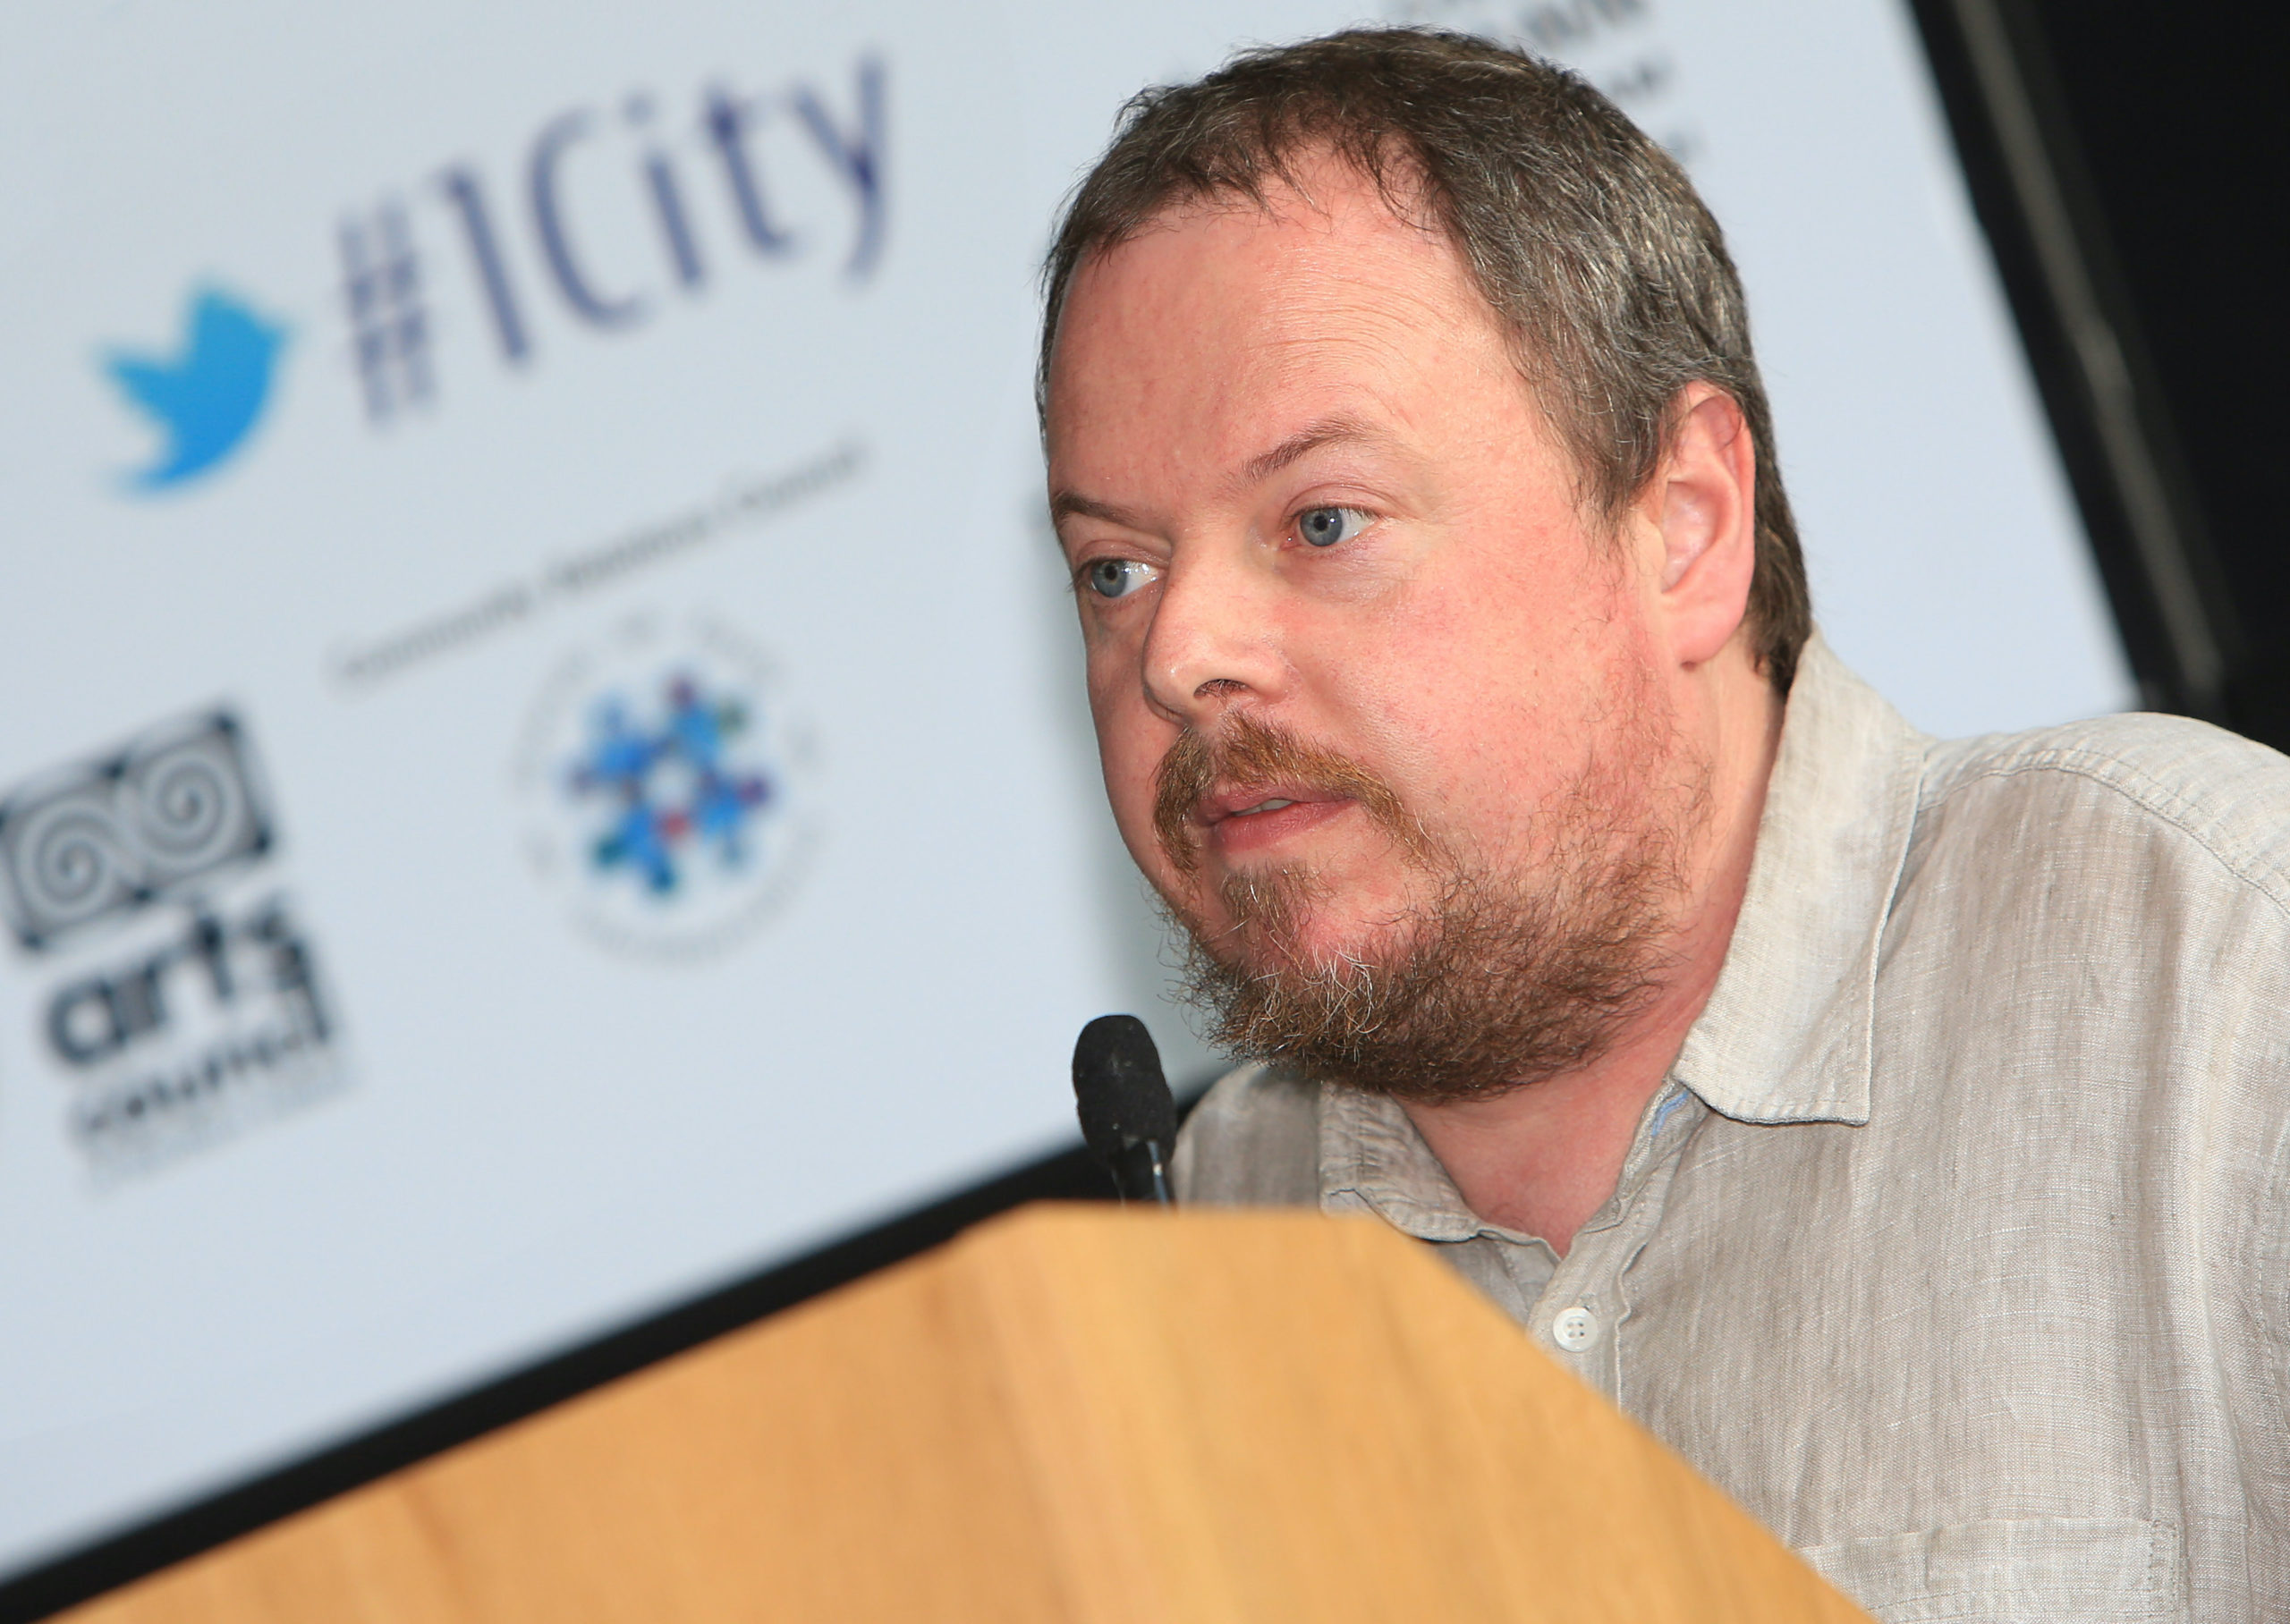 Belfast MET E3, One City Conference \'Lifting the City\' . pictured: Mark Hackett (Forum for an Alternative Belfast) 95JC13